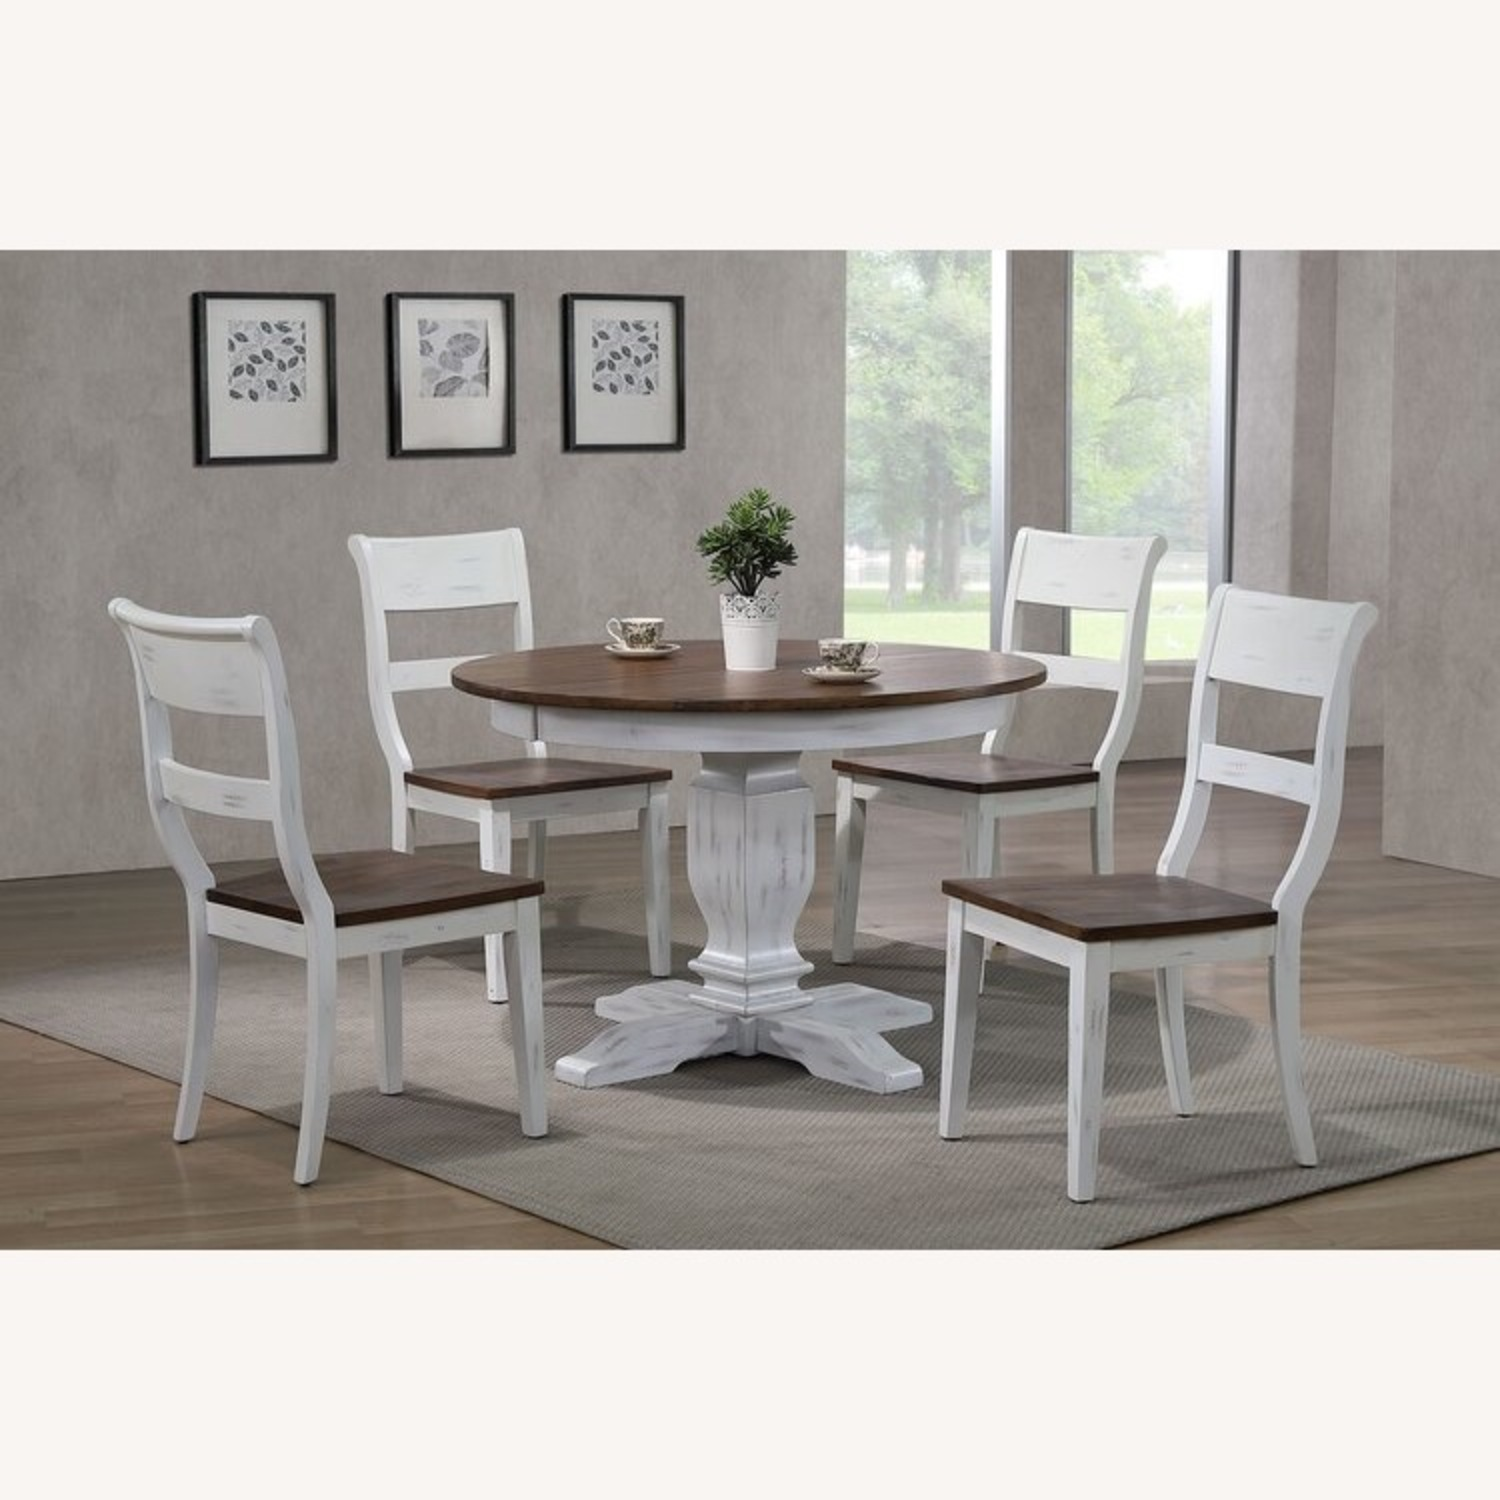 Solid Wood Extension Table with 4 Chairs - image-3